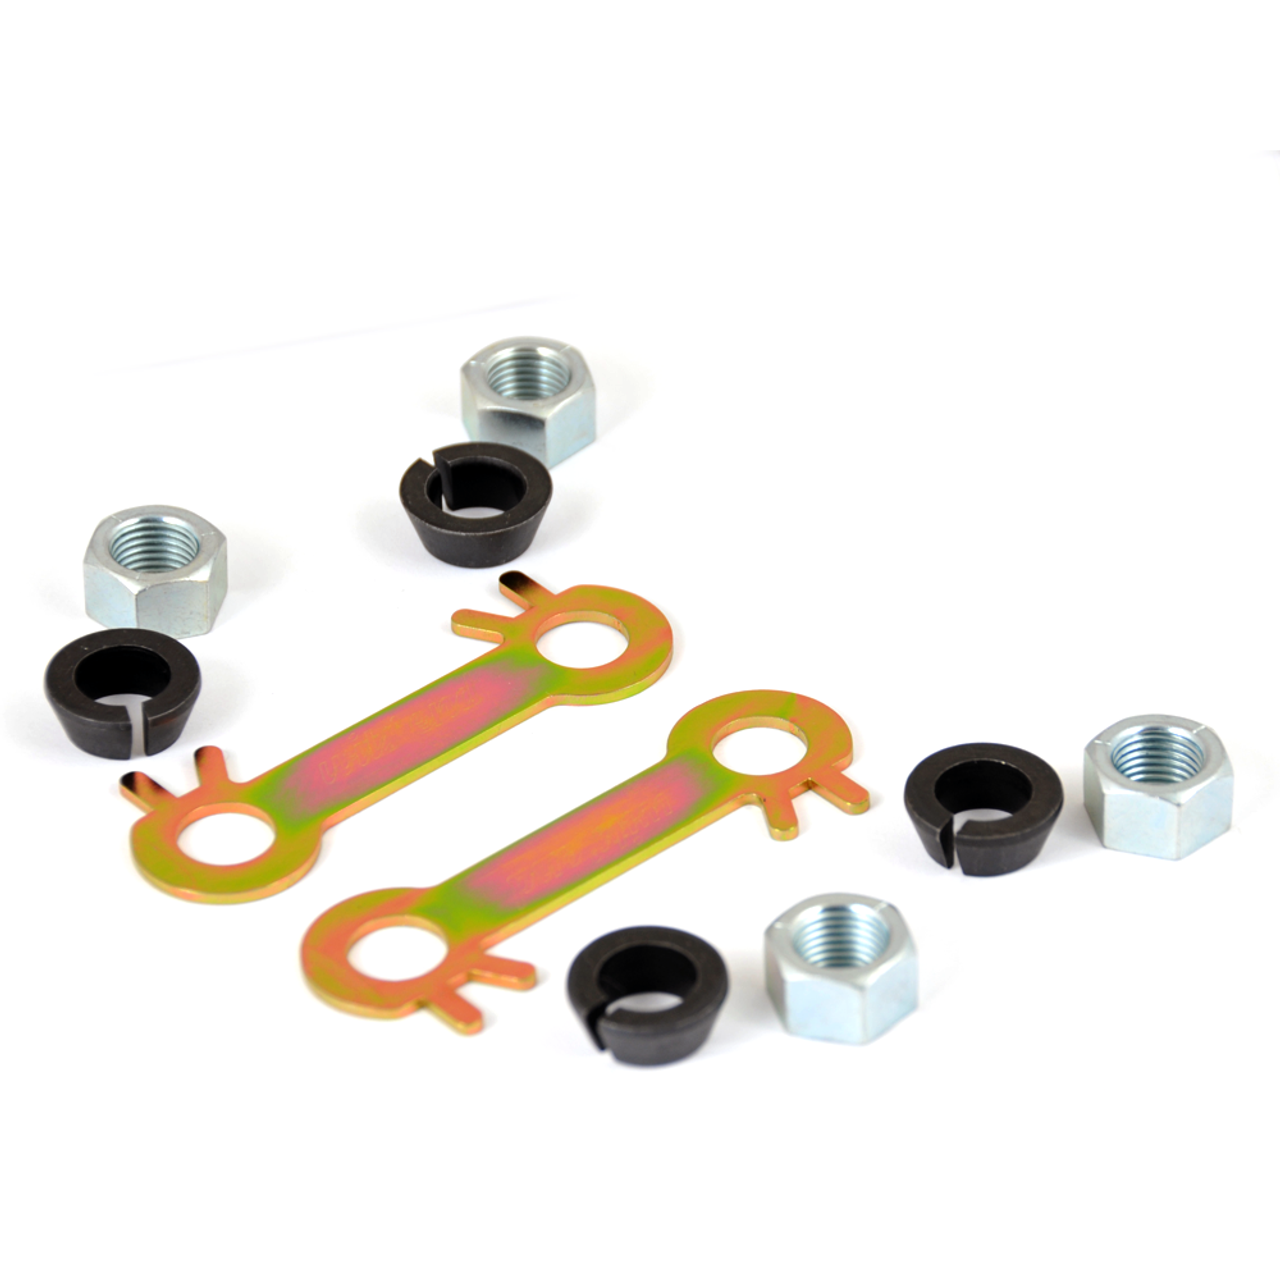 80 Series Nut Hugger- Toyota Solid Axle Knuckle (SAK-1)- what the new knuckle set would look like once the washers are removed. New OEM hardware NOT included